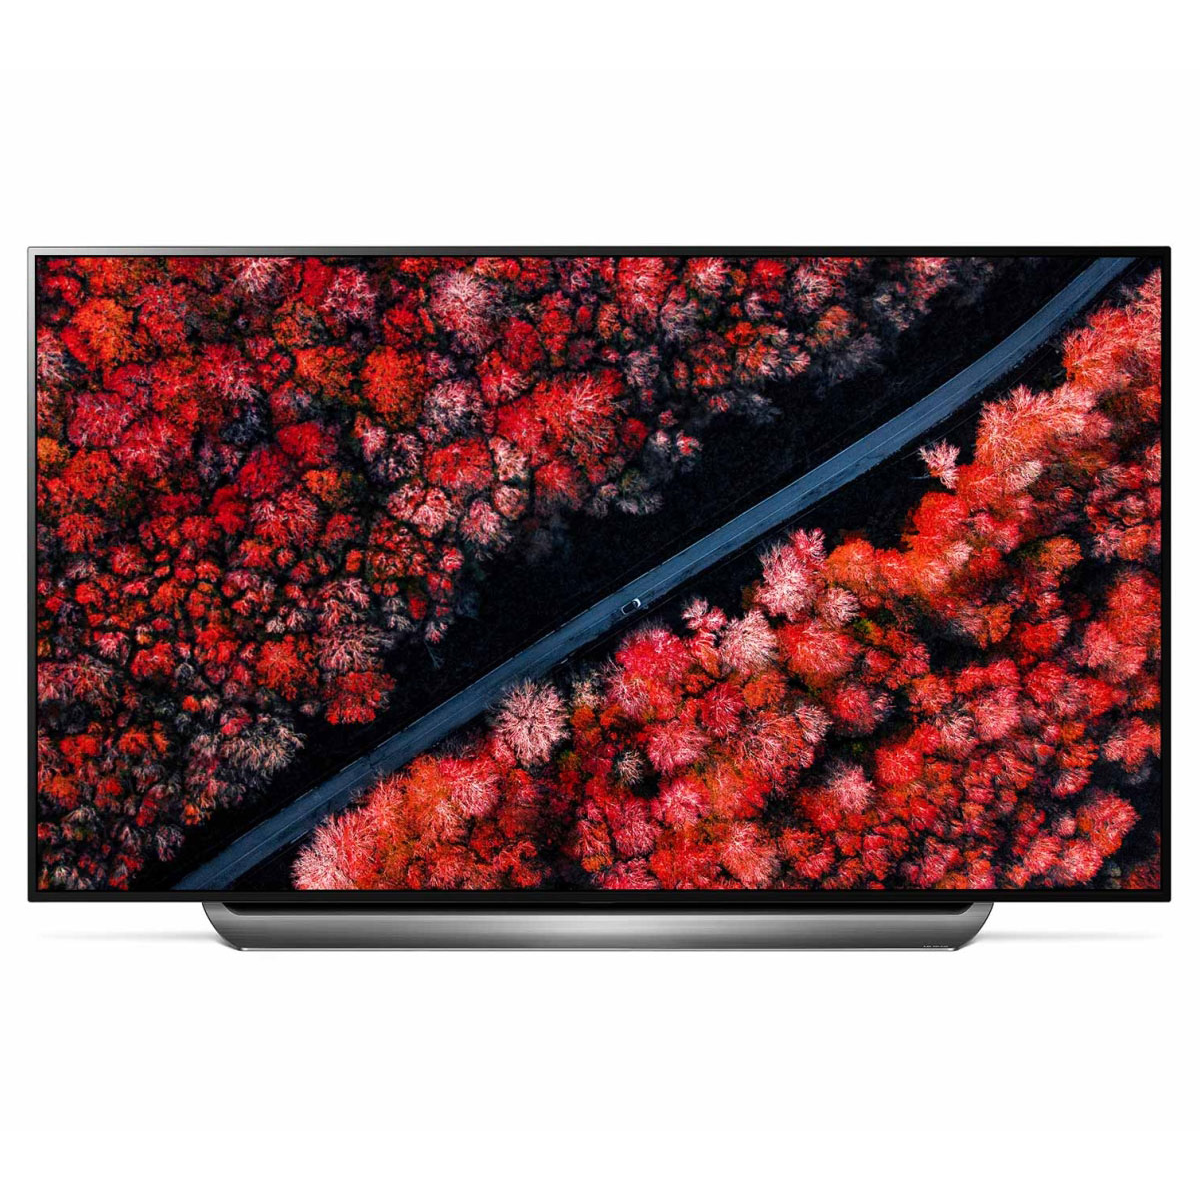 Image of 77inch OLED HDR 4K UHD SMART TV WiFi Dolby Atmos